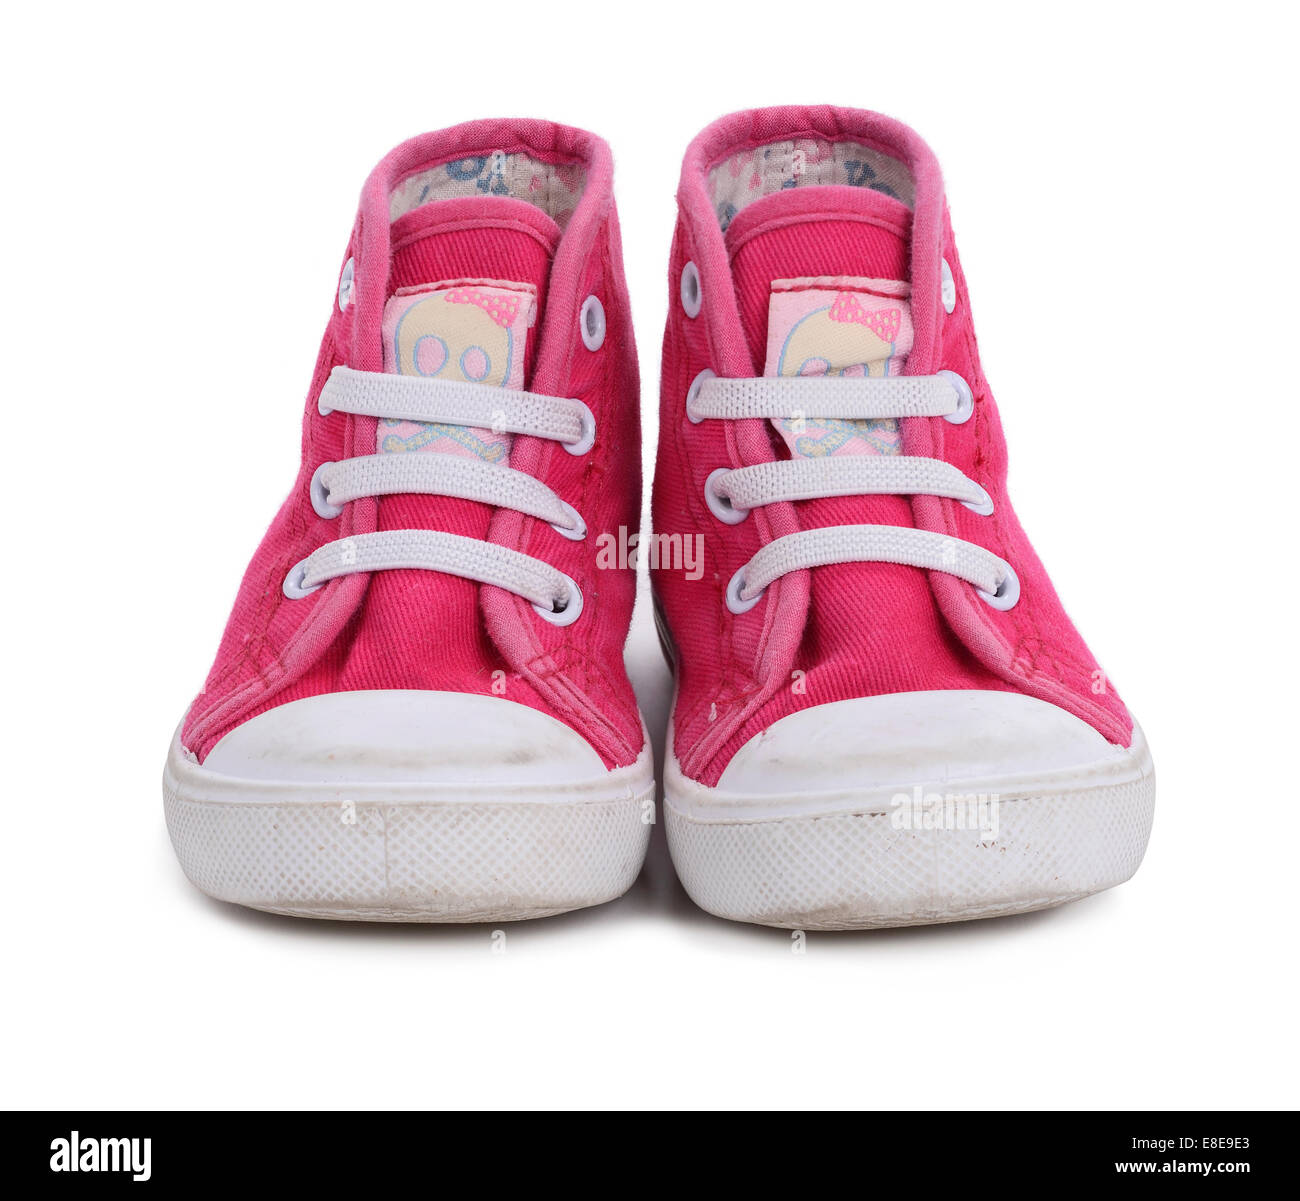 small pink girls shoes Stock Photo